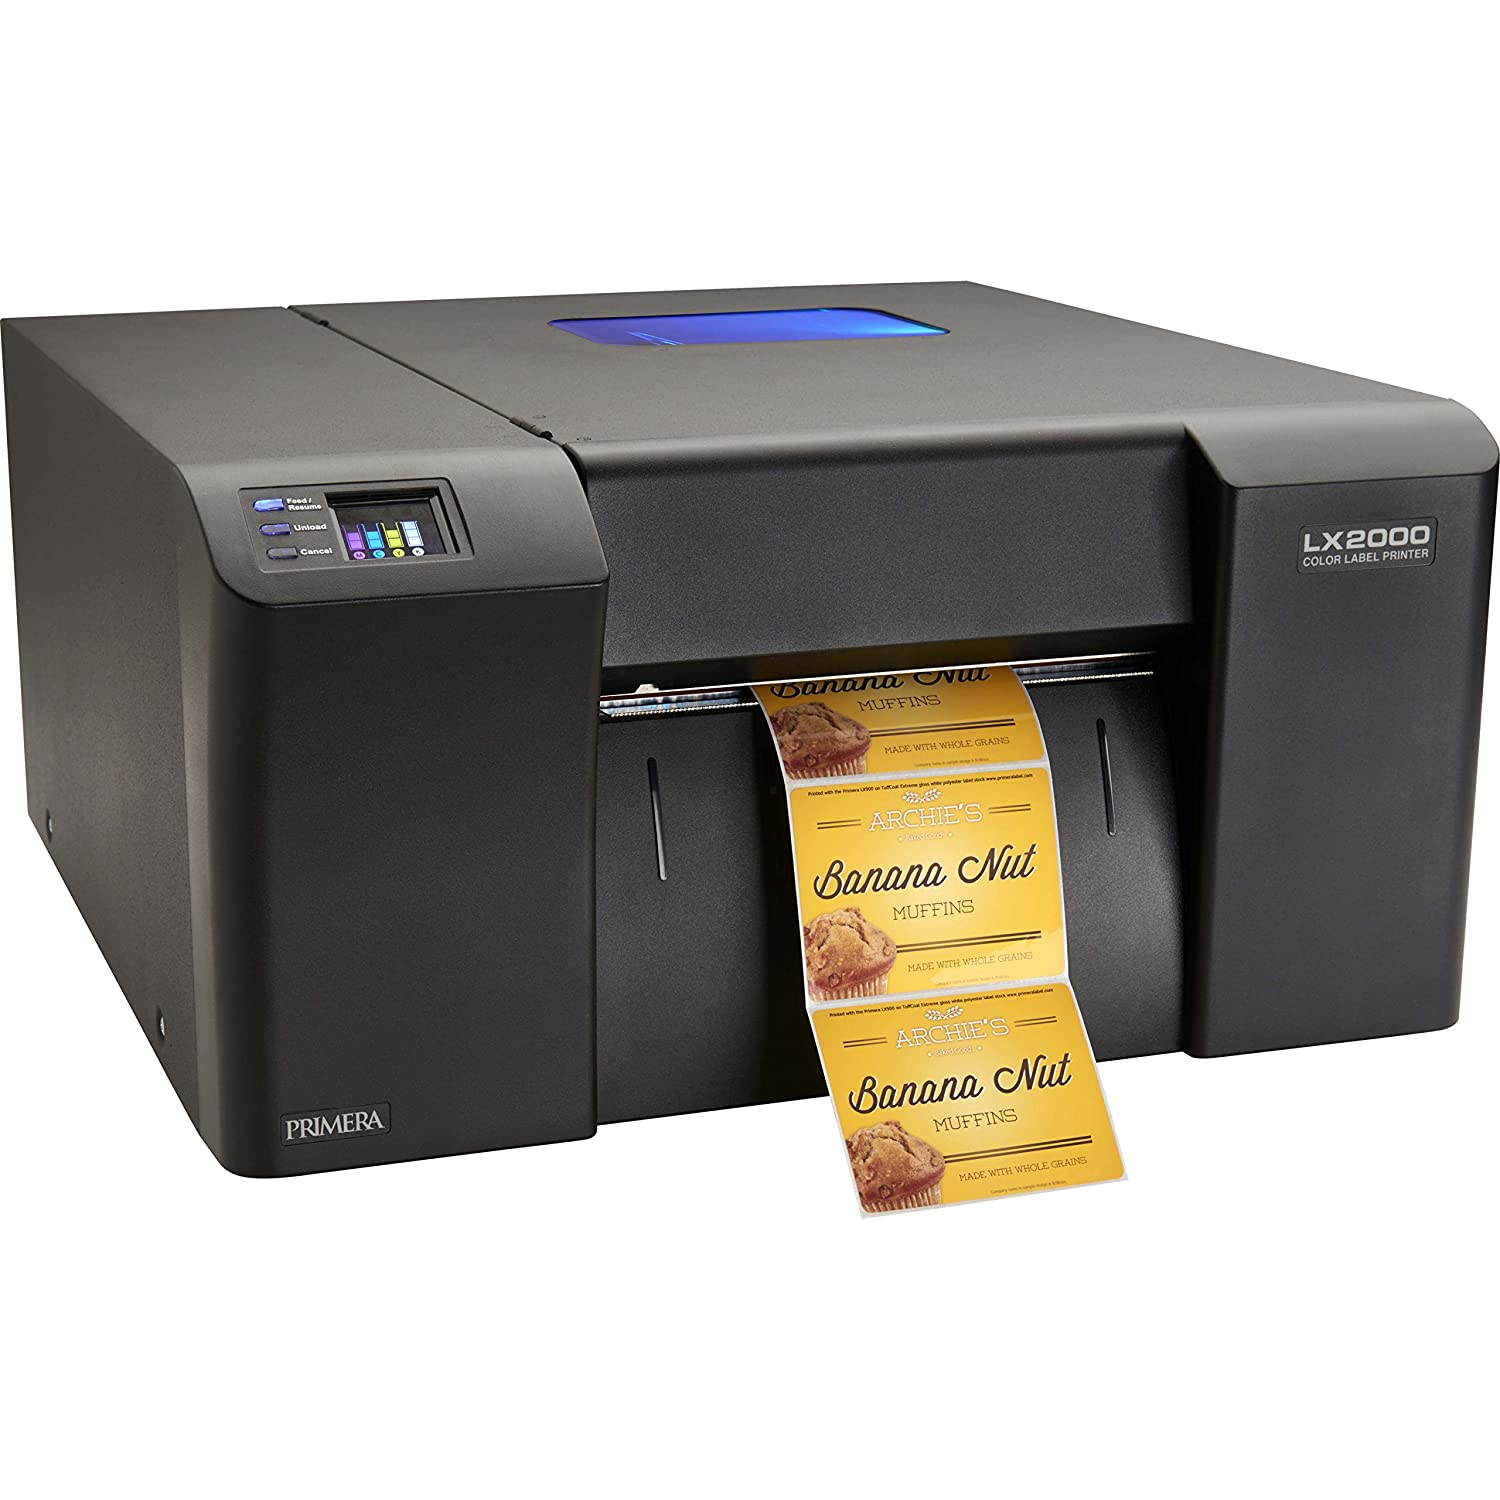 Color printer label - Amazon Com Primera Lx2000 Color Label Printer Print Your Own High Quality Short Run Product Labels Fastest Printing Electronics